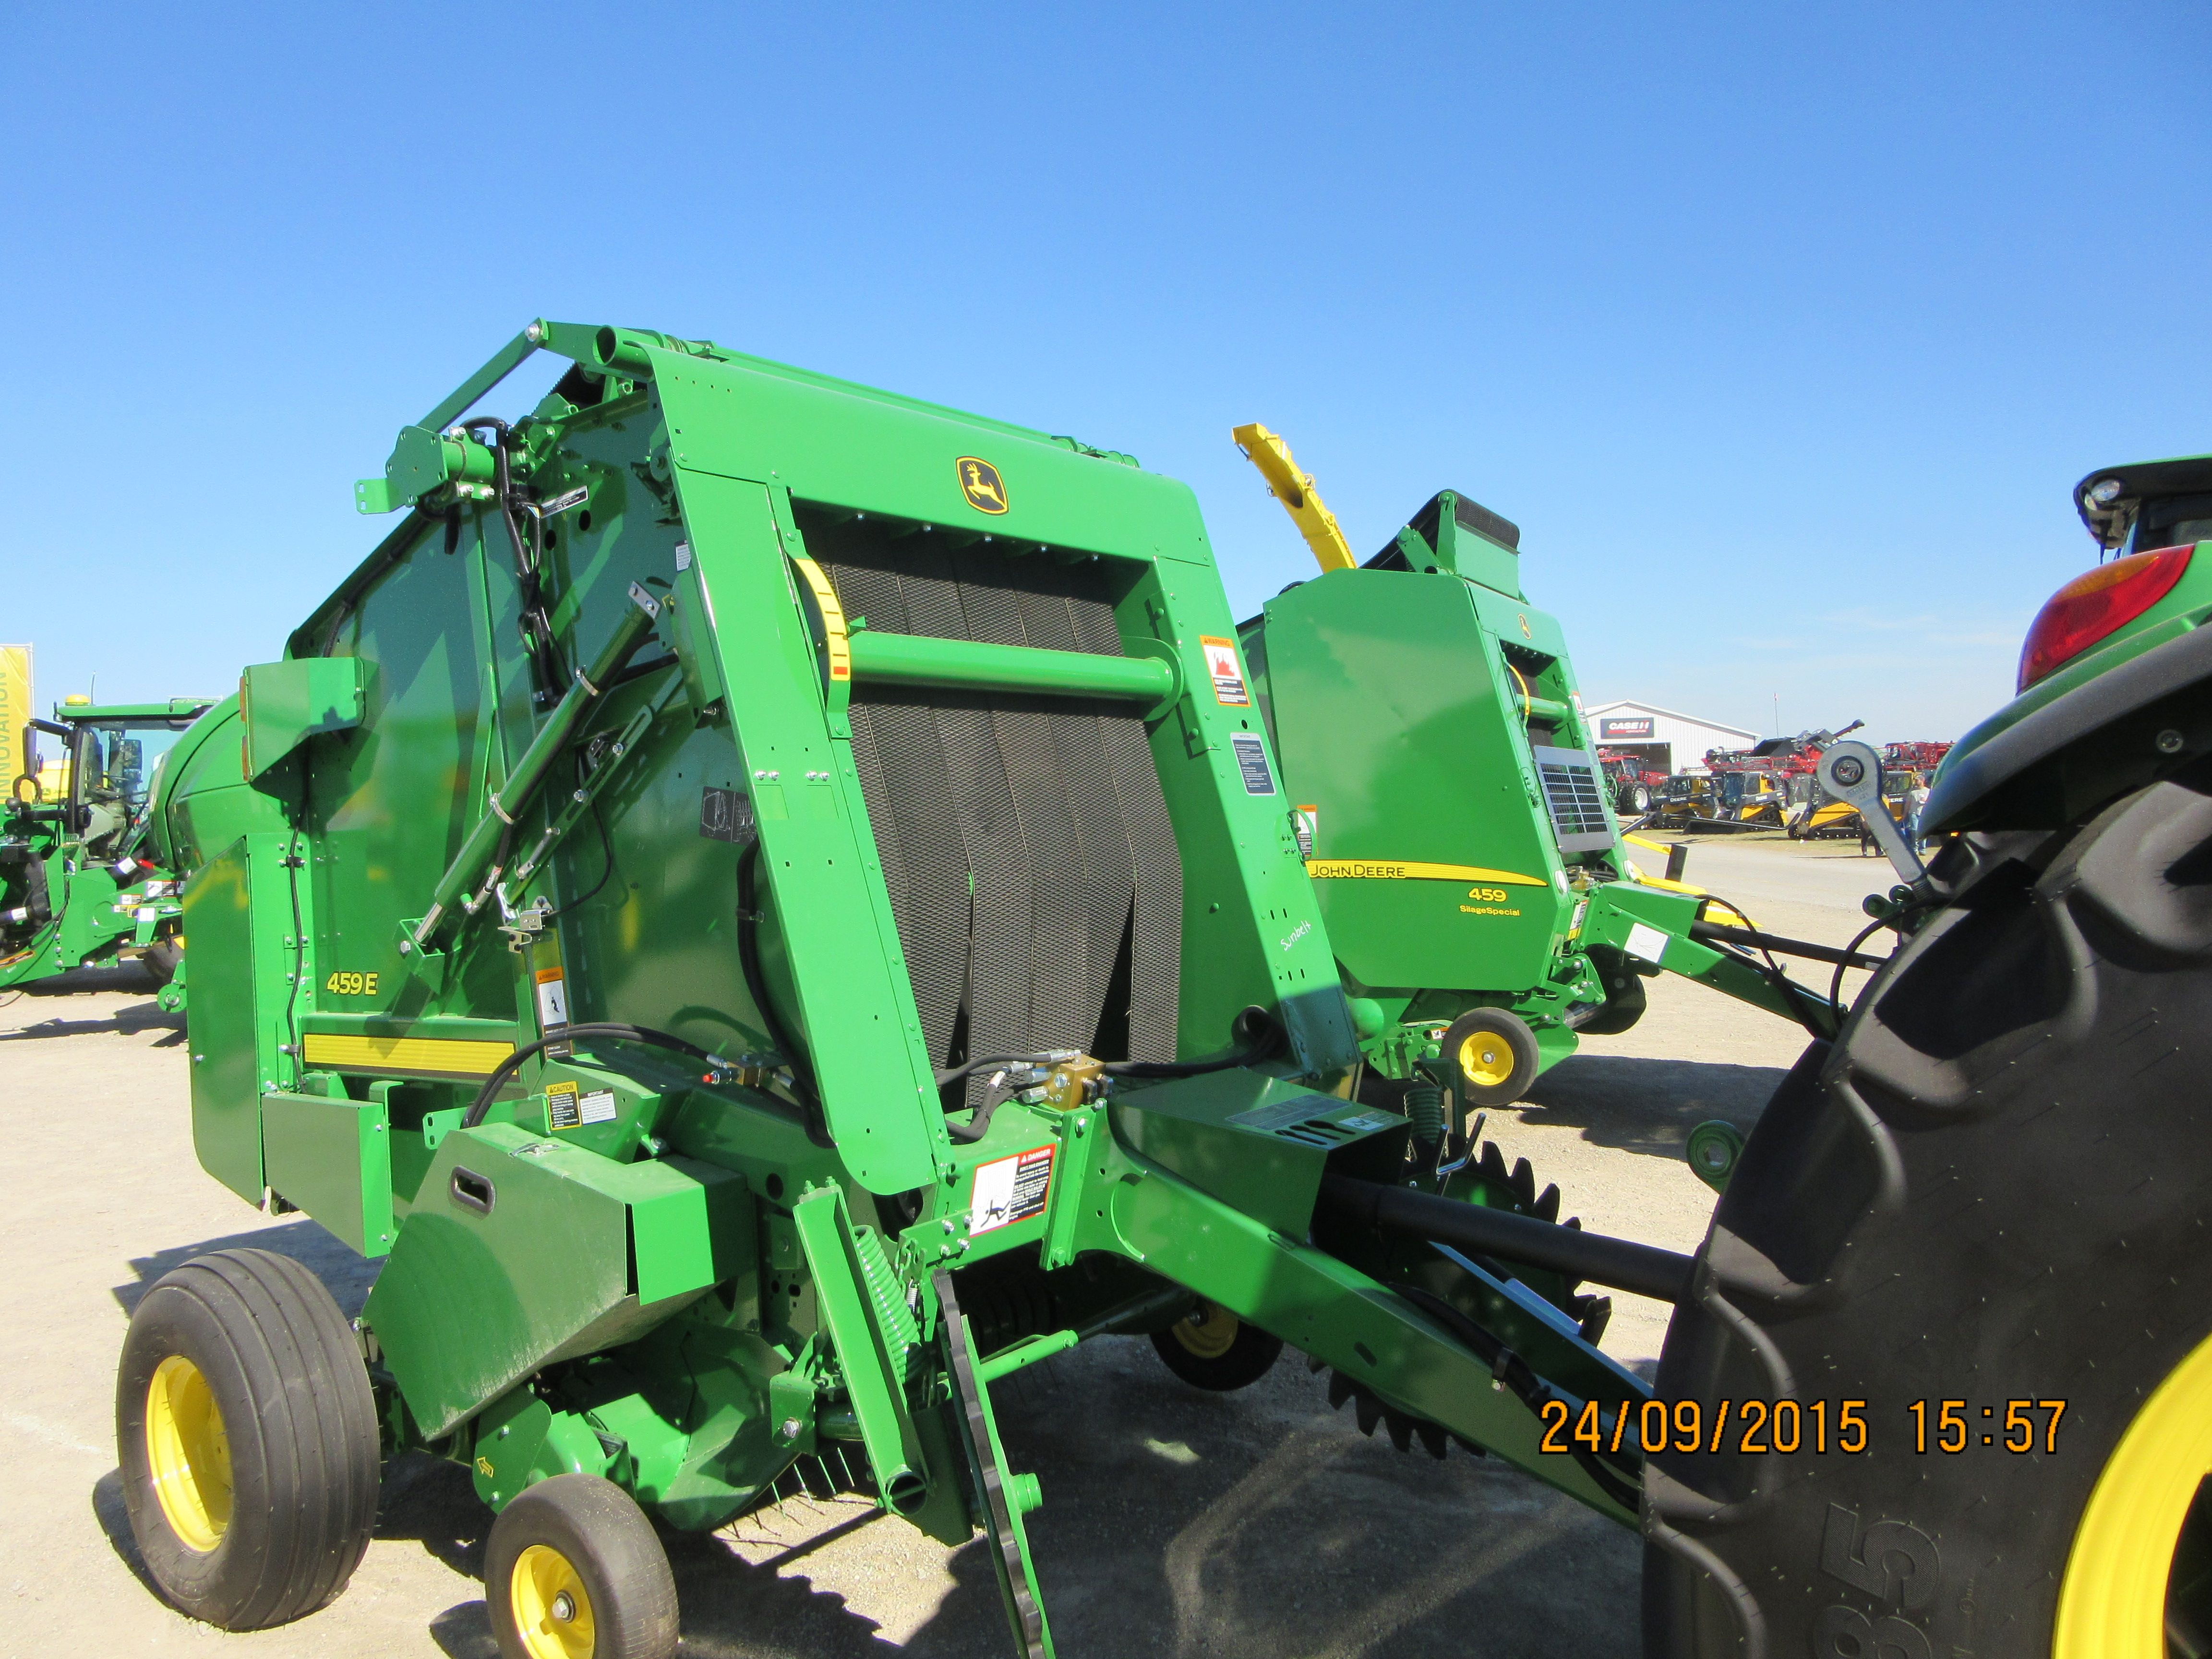 New John Deere 459E round baler with another 459 in background